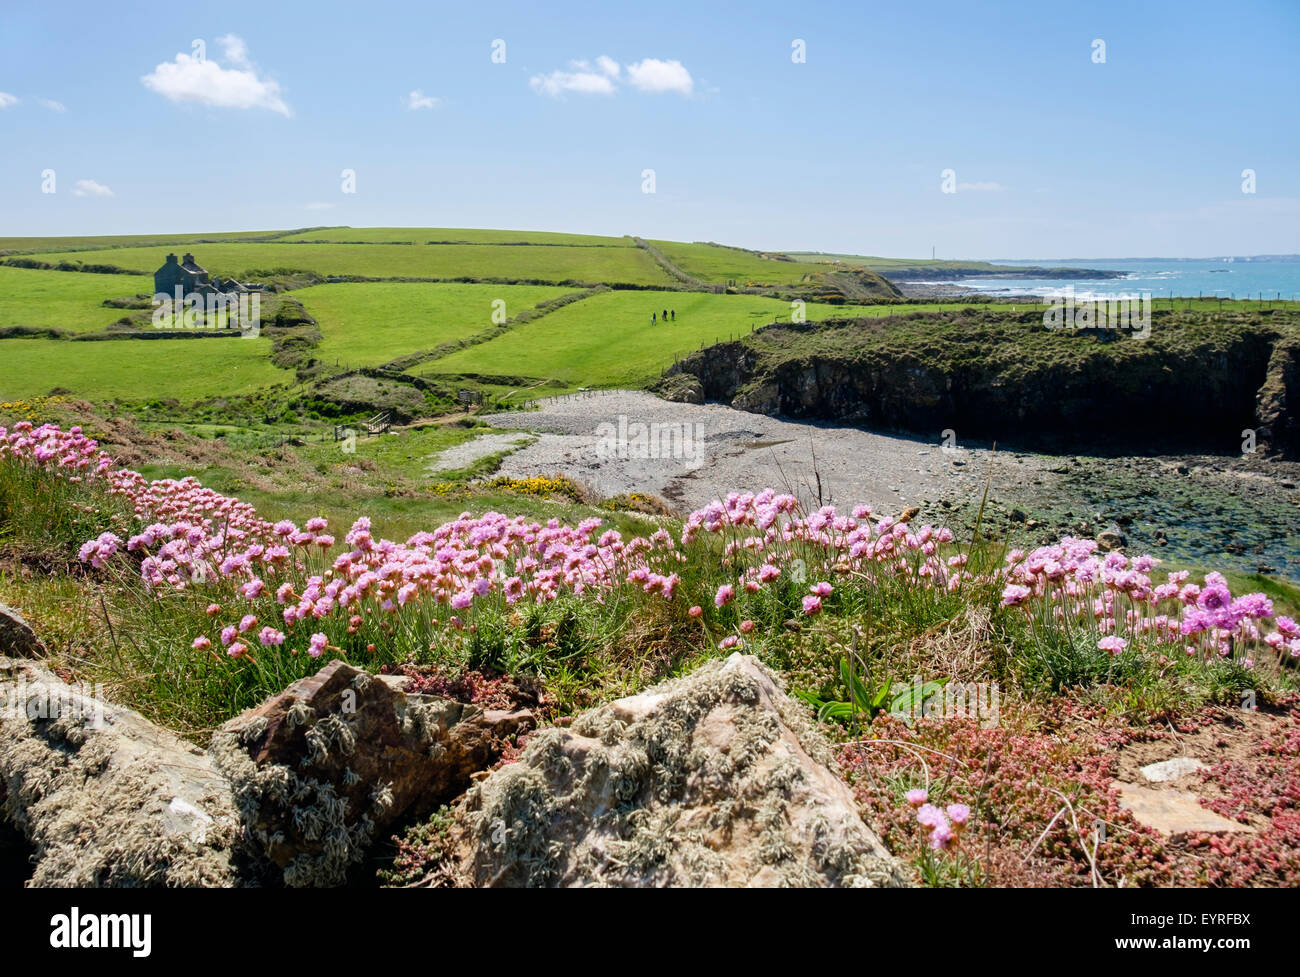 Sea Pink or Thrift (Armeria maritima) flowers growing beside coast path in early summer. Cable Bay Isle of Anglesey - Stock Image